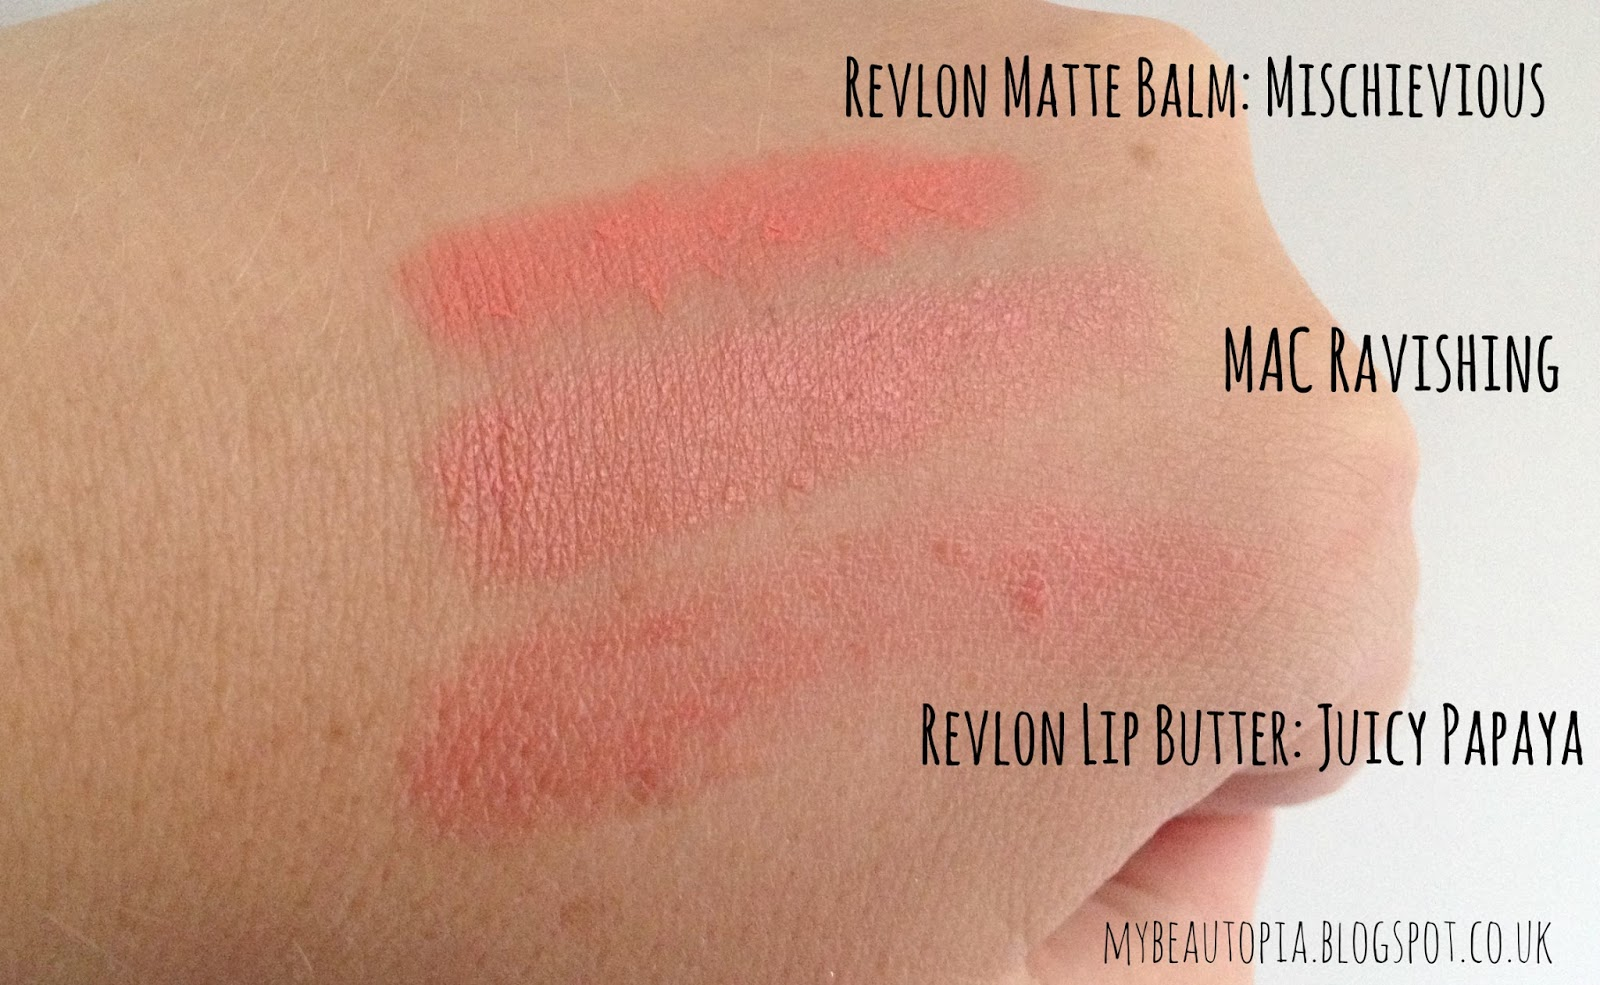 MAC Ravishing Cremesheen Lipstick comparison swatches with Revlon Matte Balm Mischievous & Revlon Lip Butter Juicy Papaya